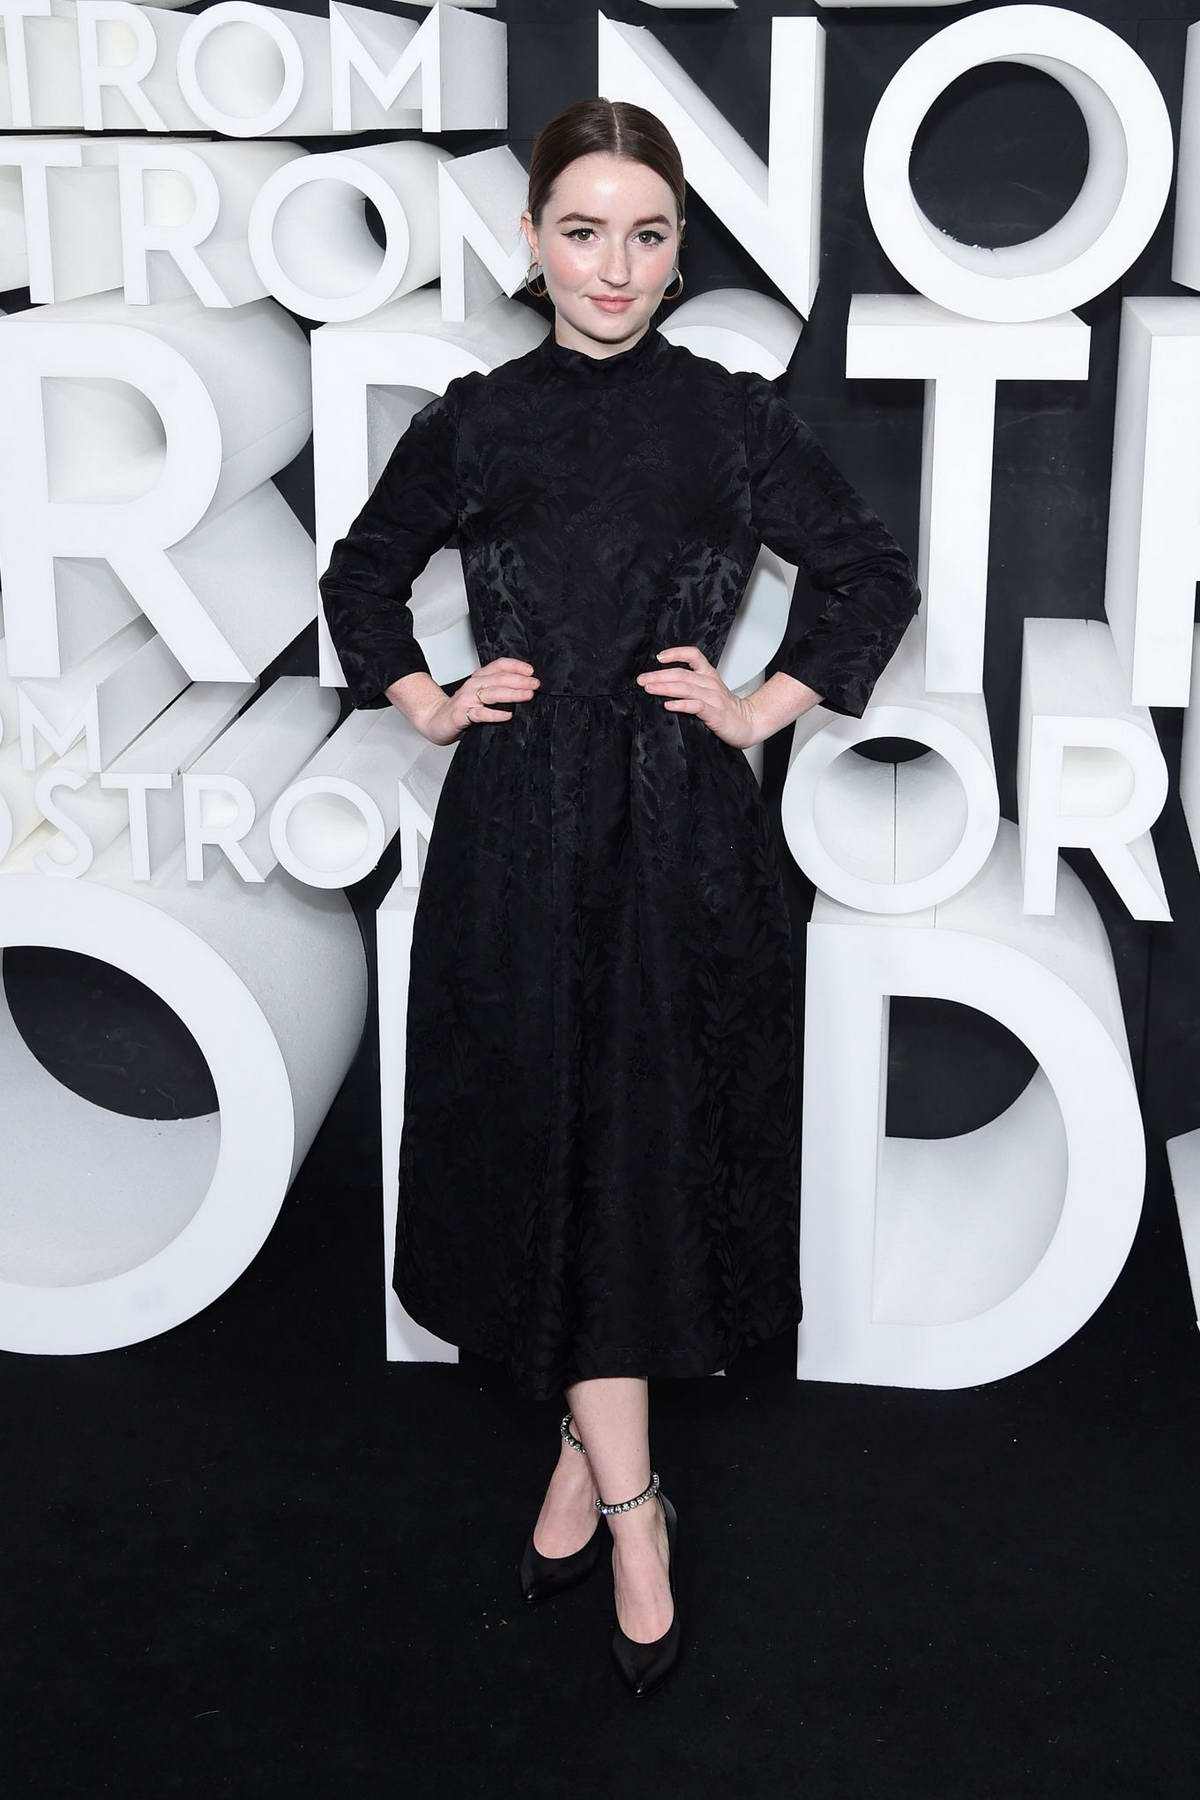 Kaitlyn Dever attends the Nordstrom NY Flagship Opening Party in New York City